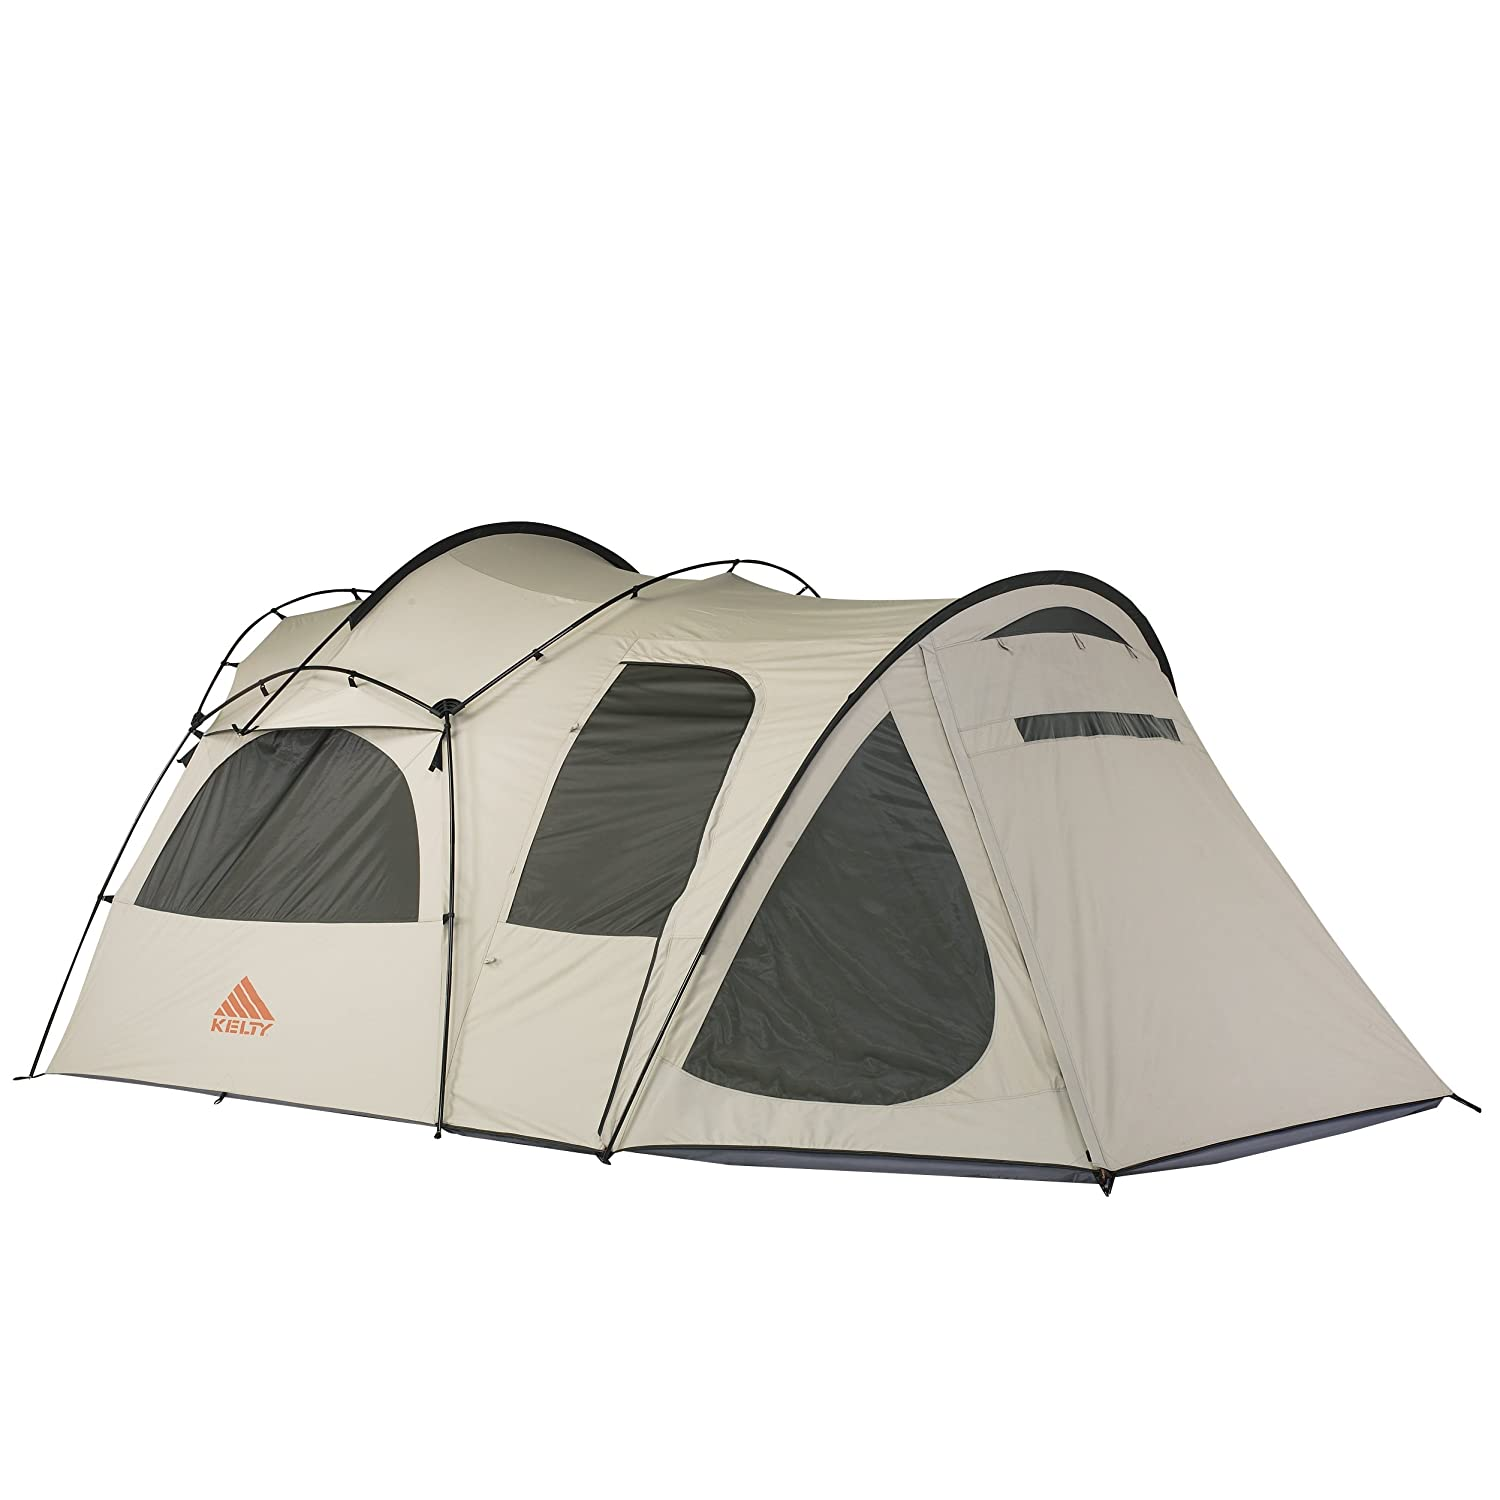 Amazon.com  Kelty Frontier 4-Person Canvas Tent  Family Tents  Sports u0026 Outdoors  sc 1 st  Amazon.com & Amazon.com : Kelty Frontier 4-Person Canvas Tent : Family Tents ...